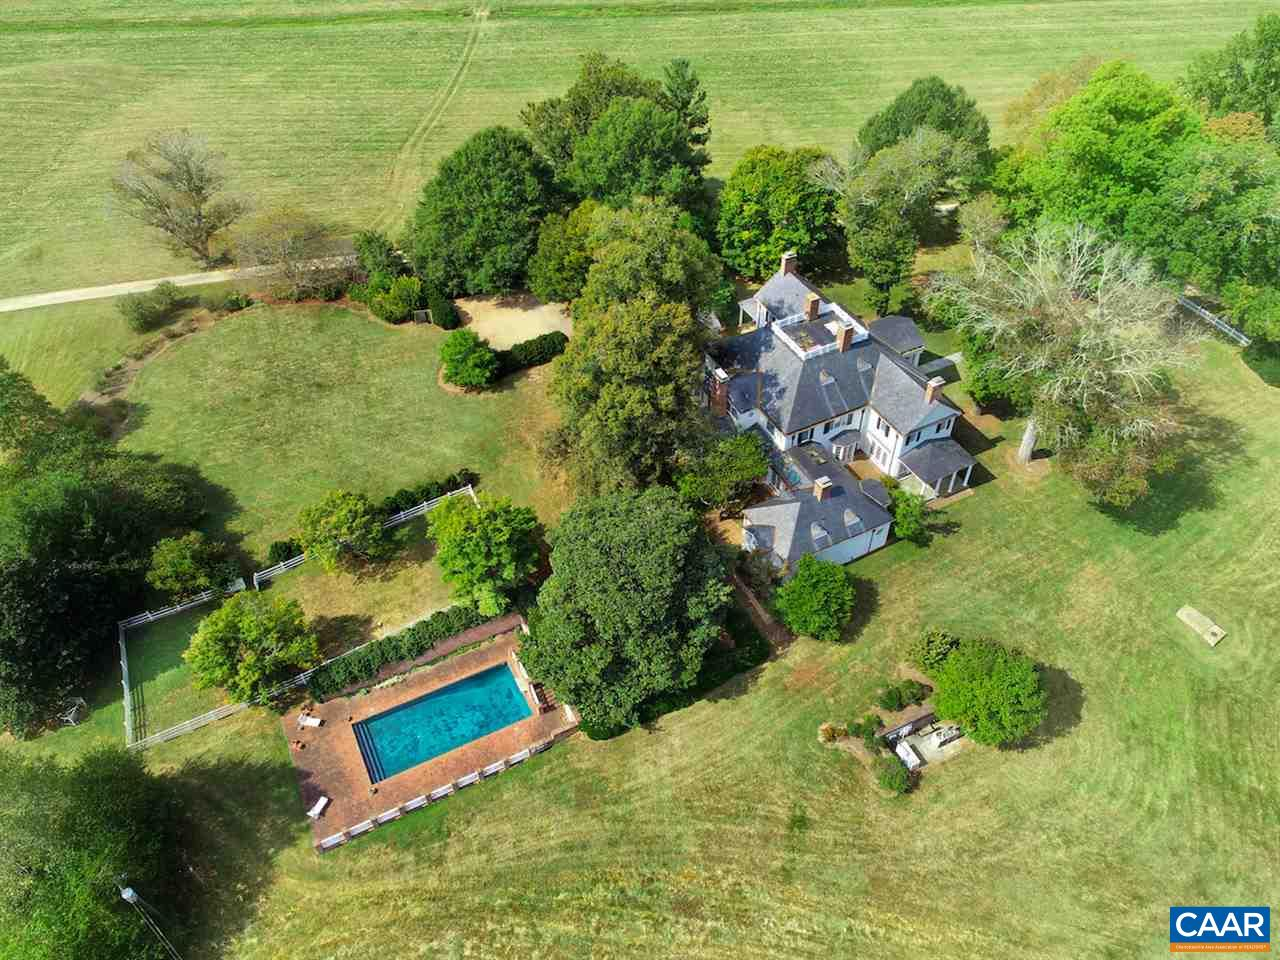 Single Family Home for Sale at Airslie 5350 Louisa Rd Keswick, Virginia 22947 United States